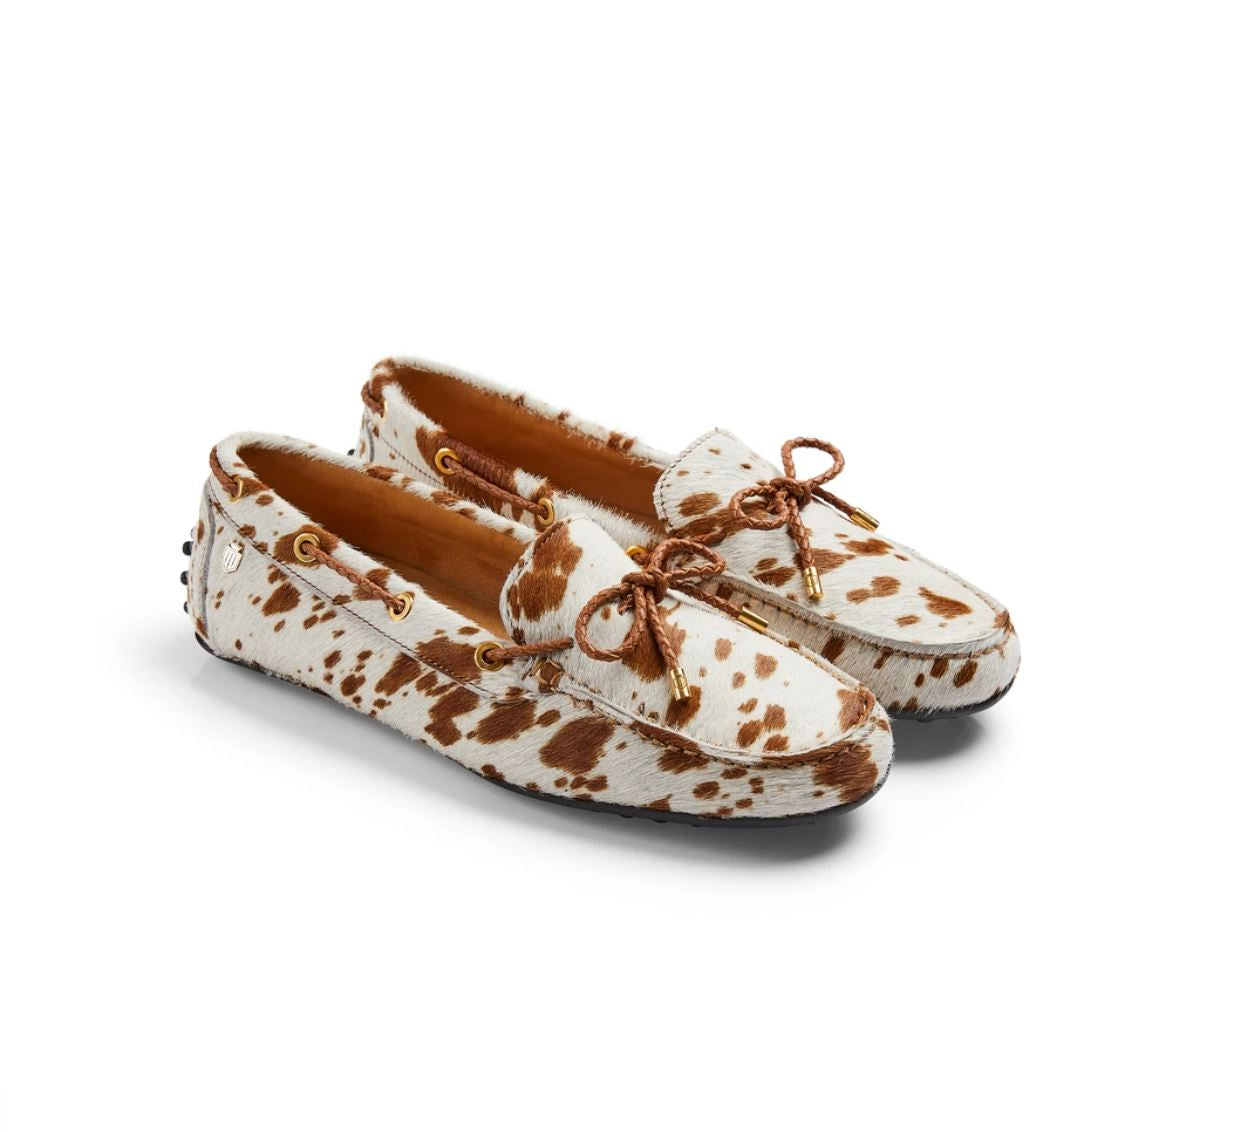 Fairfax & Favor Women's Henley Driving Shoe in Cowhide